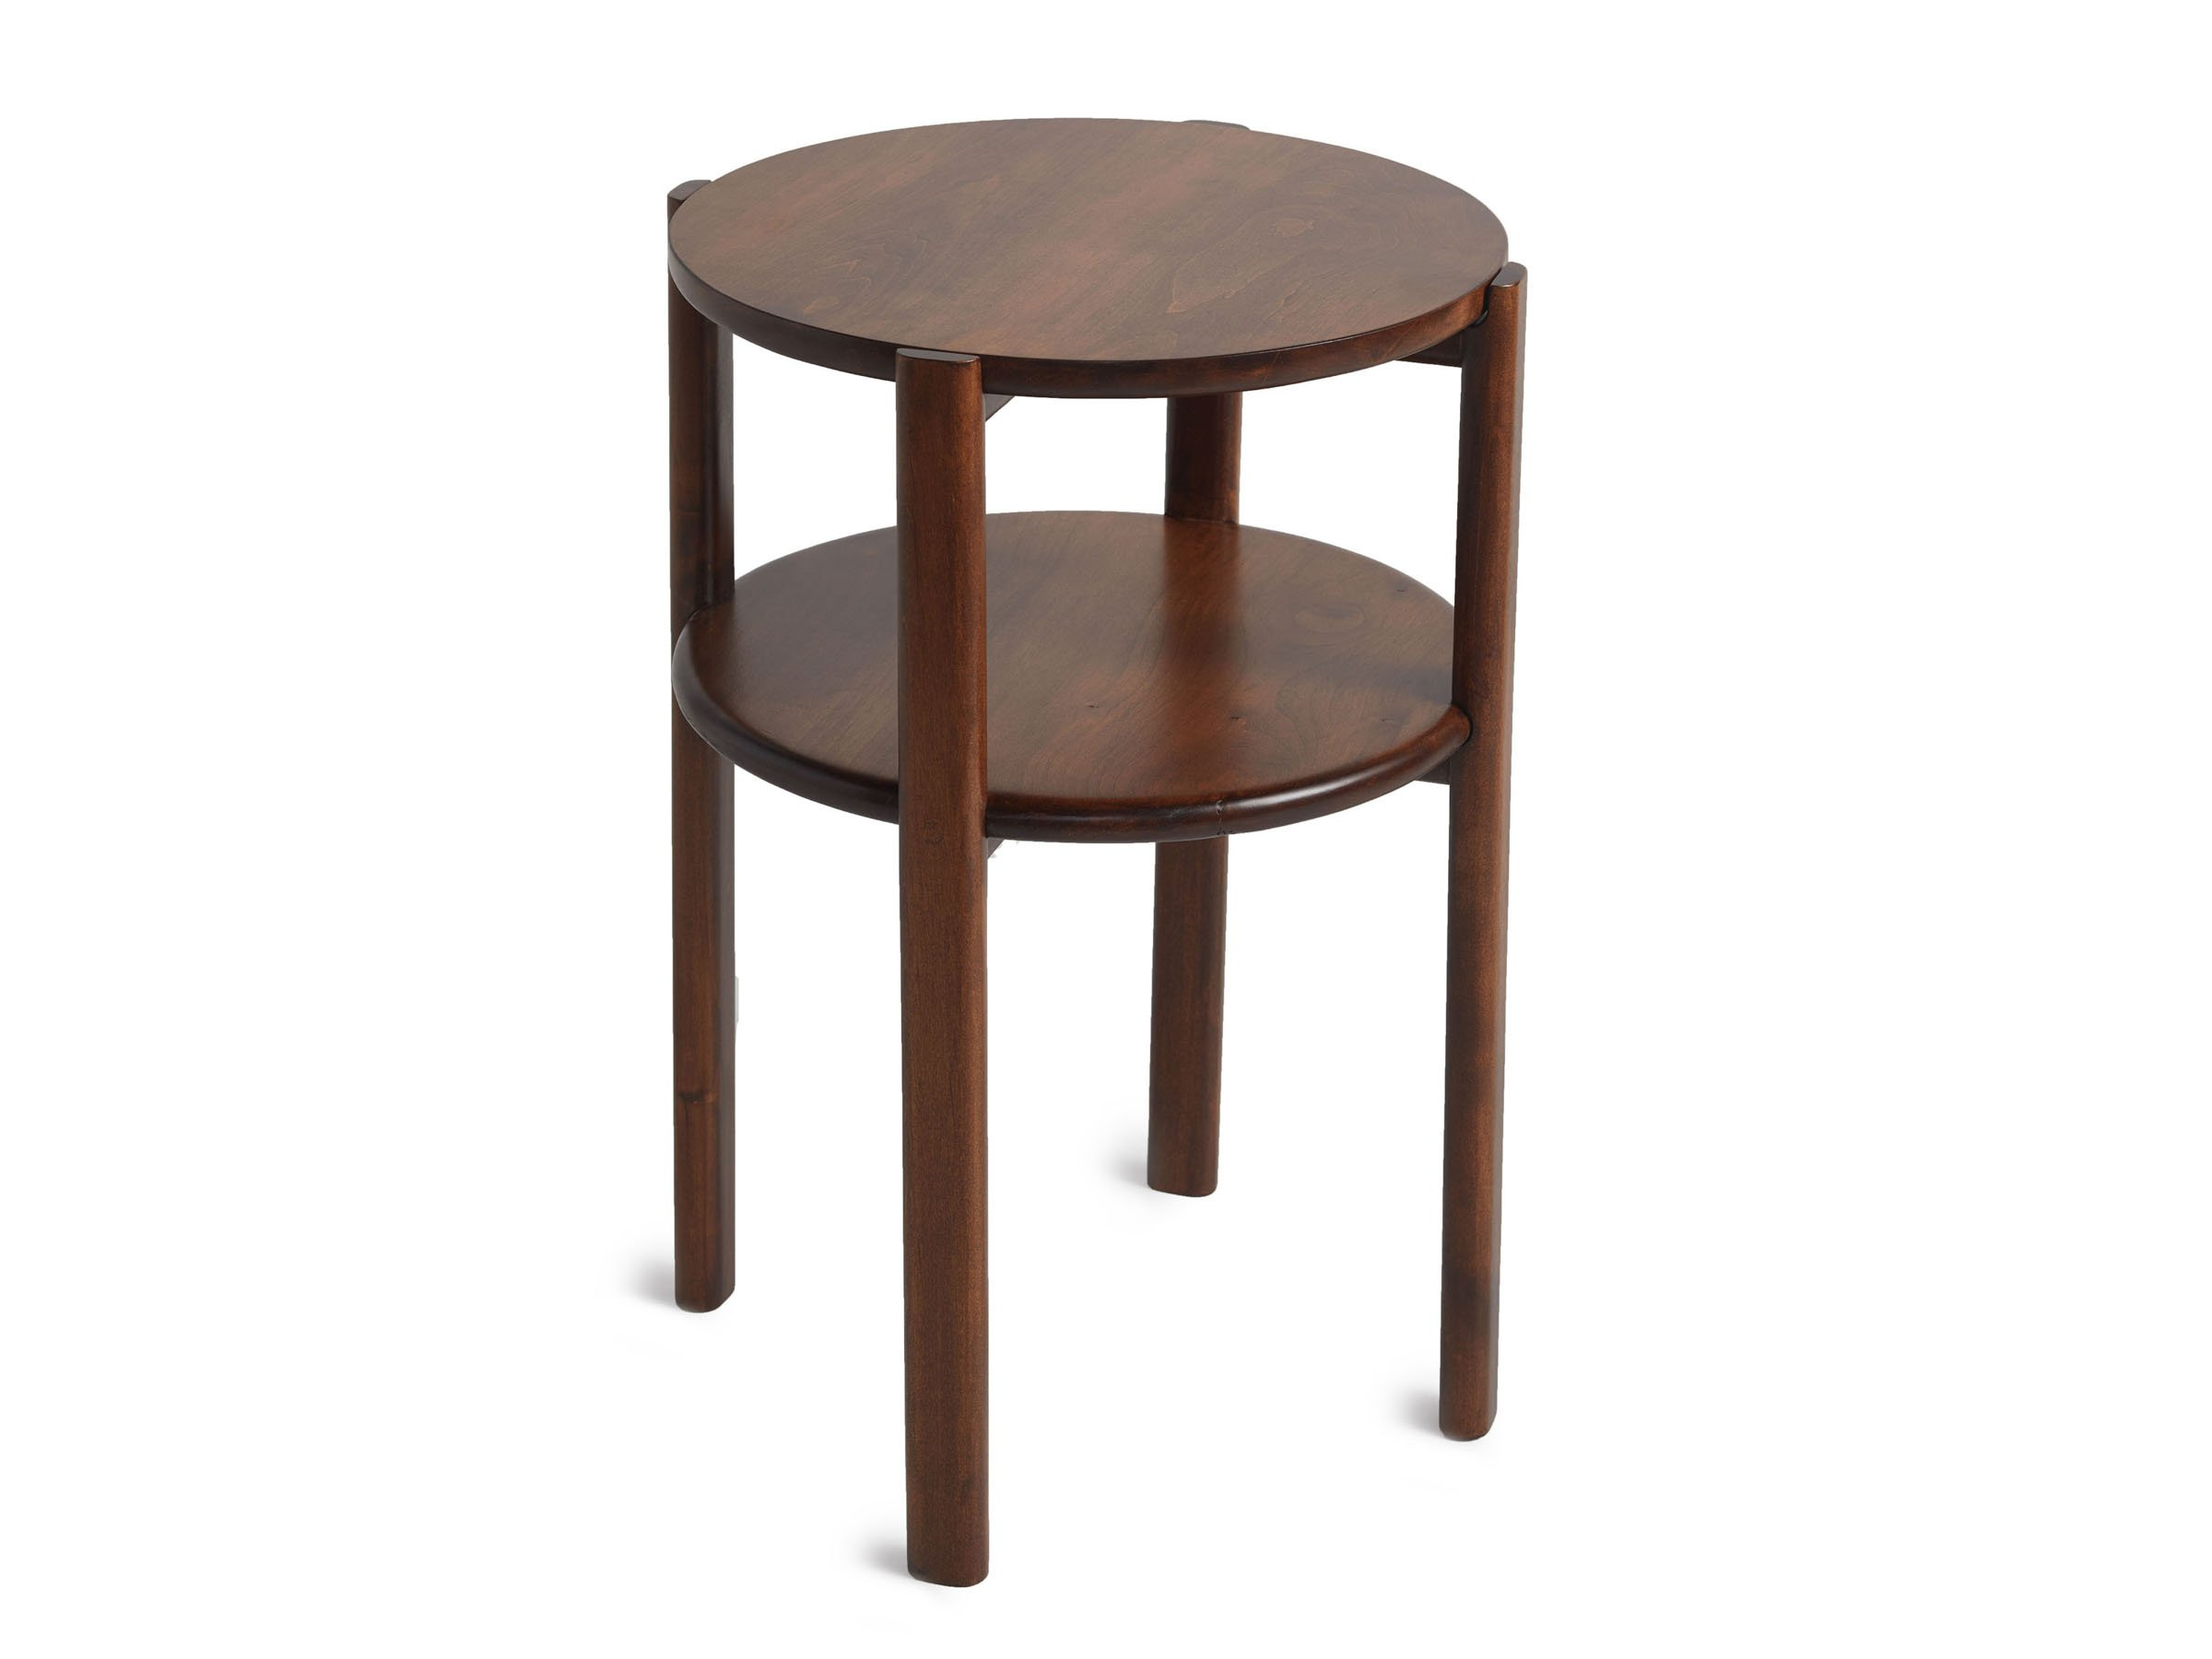 handmade wood side table parachute walnut finish outdoor west elm acorn ikea pot rack small garden and chairs antique ship lights oak glass lawn mowers long centerpieces tiffany